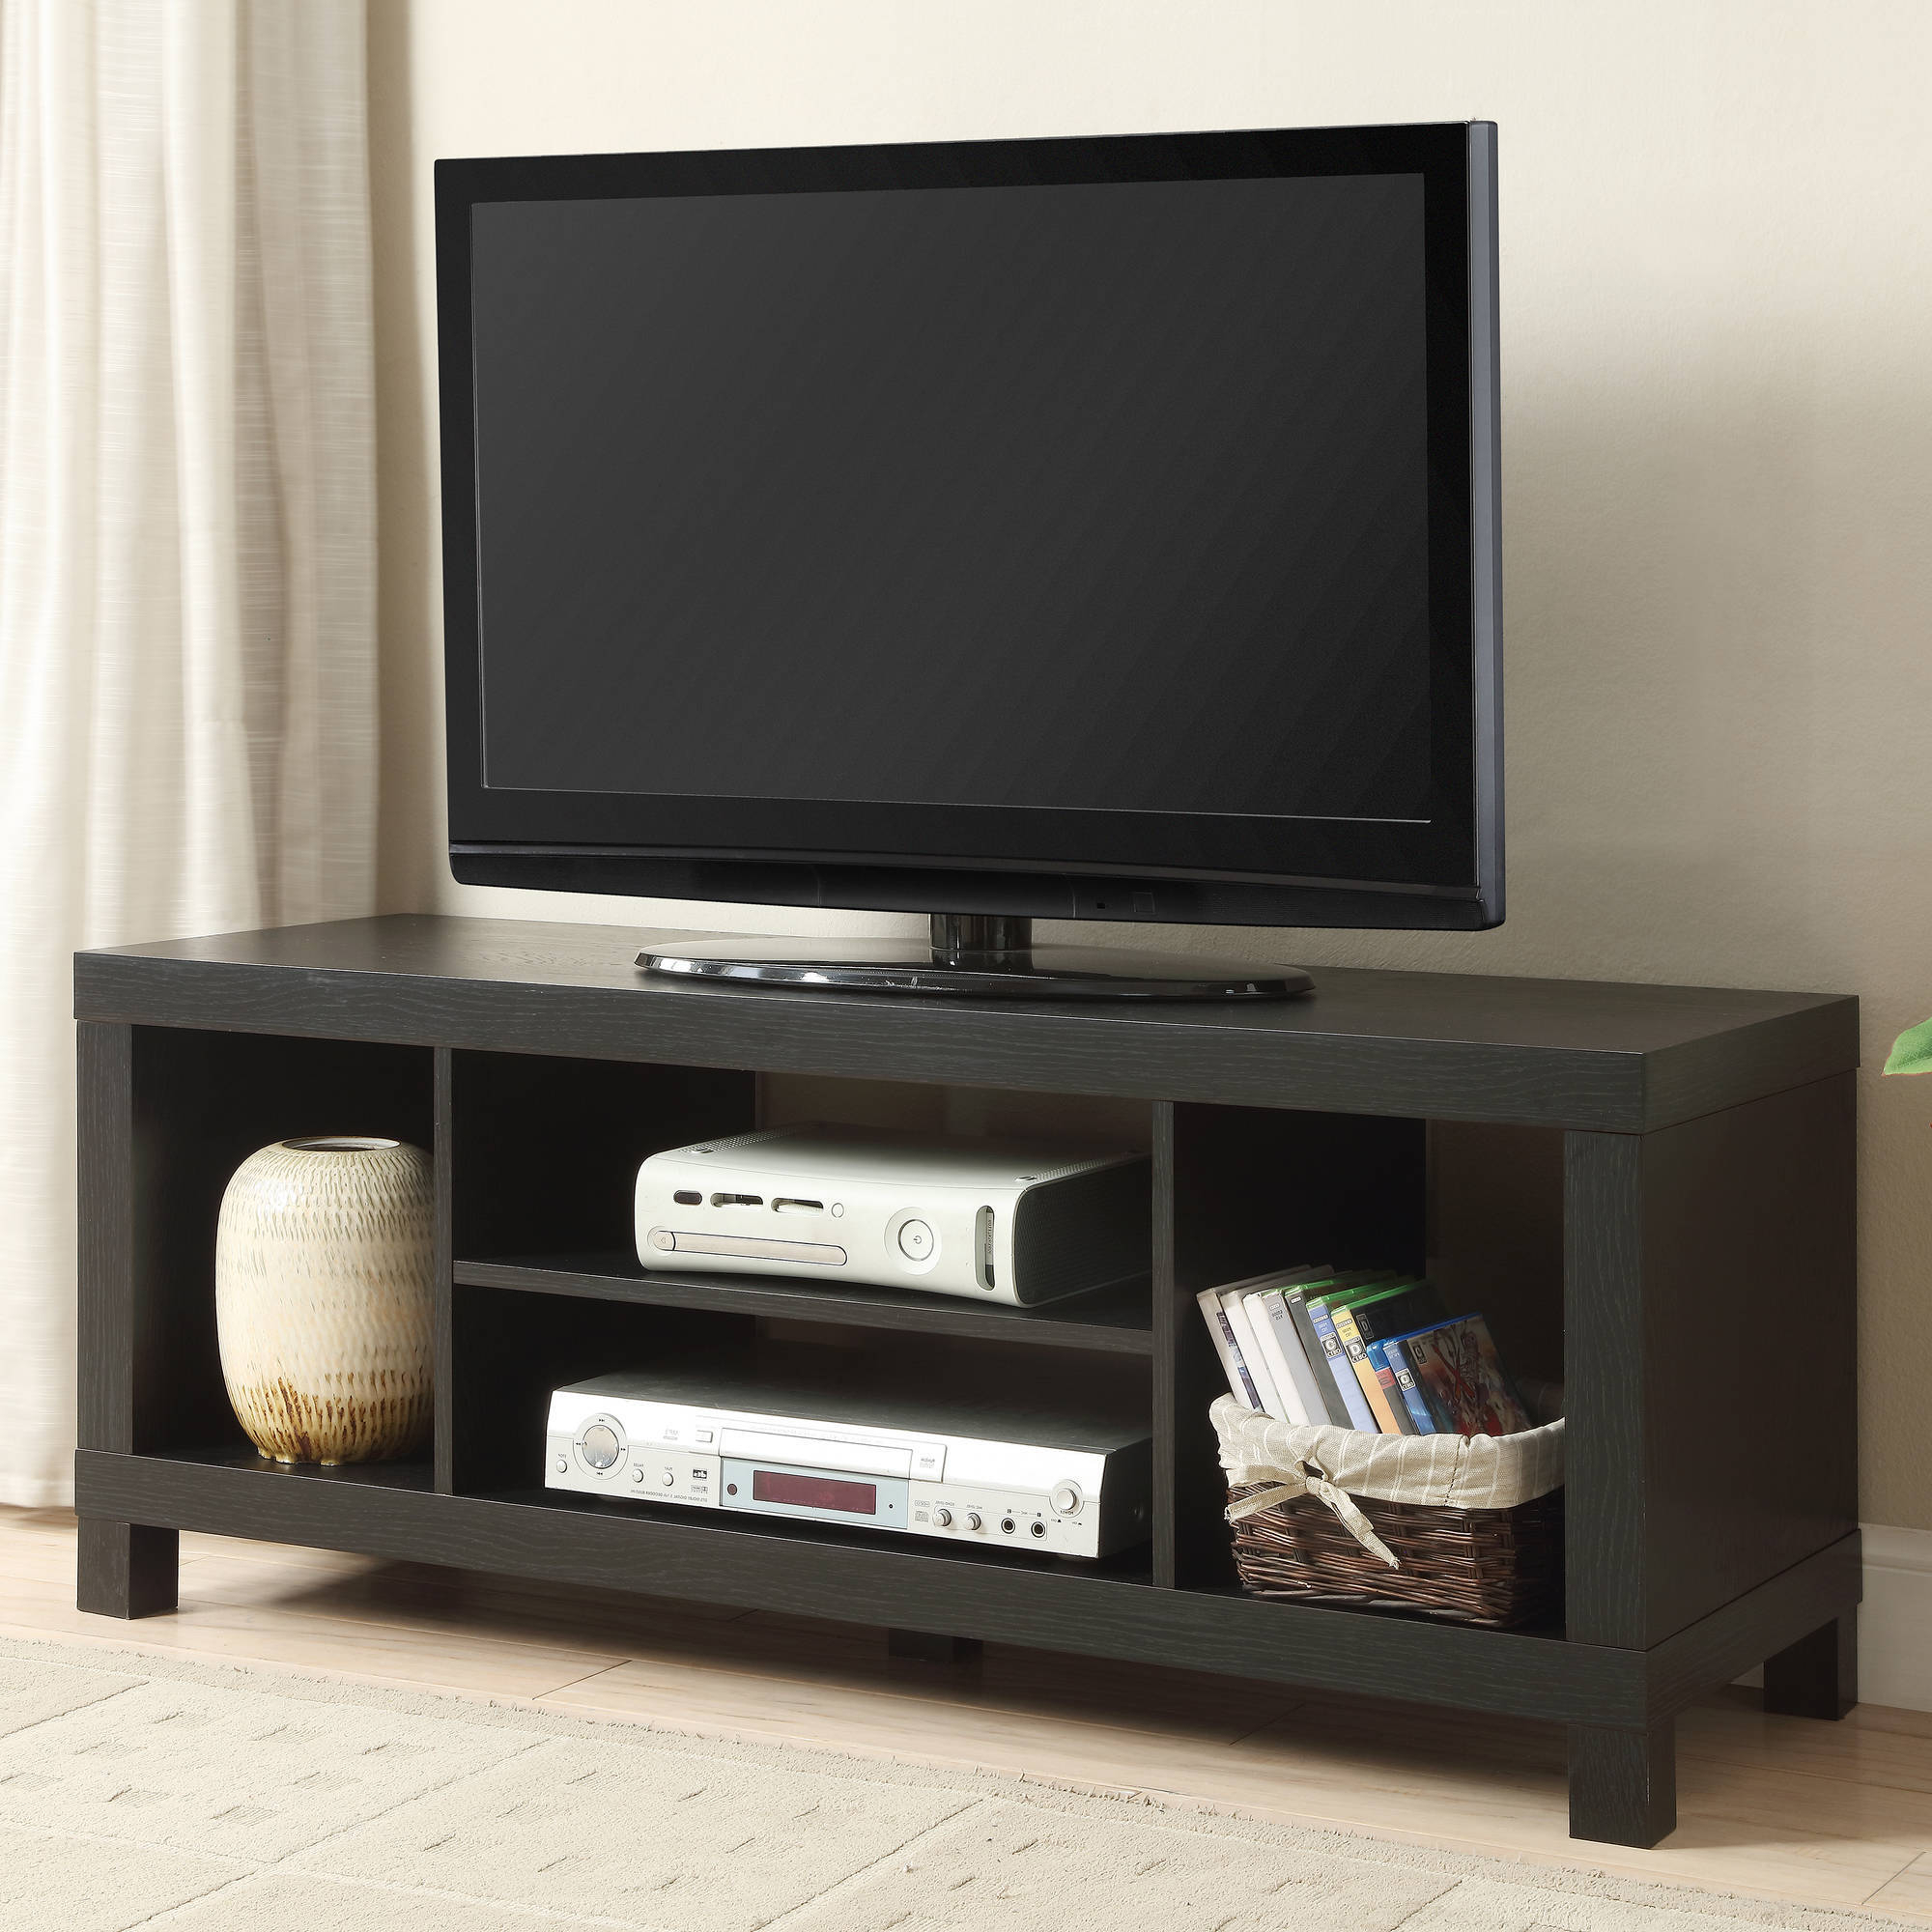 """Most Recent Floating Glass Tv Stands Intended For Mainstays Tv Stand For Tvs Up To 42"""", Multiple Colors – Walmart (View 20 of 20)"""